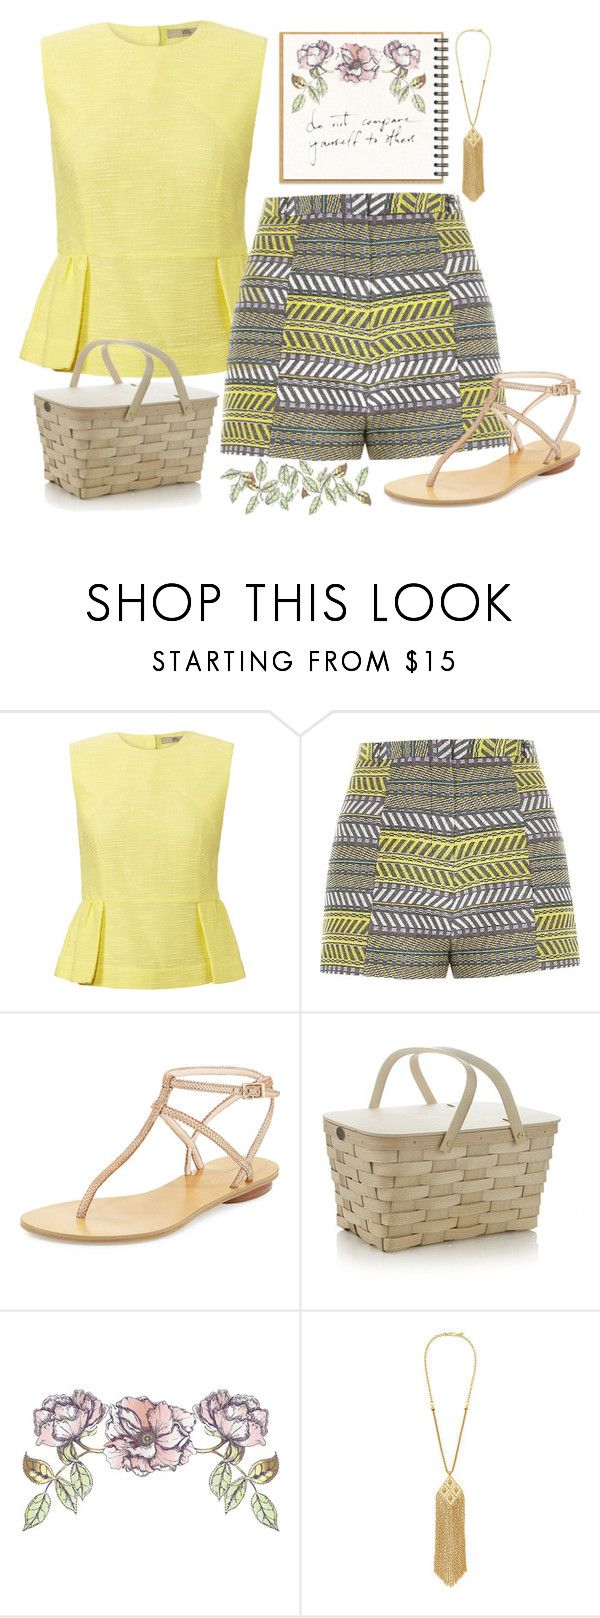 """""""Picnic for One"""" by latenightthursday ❤ liked on Polyvore featuring Orla Kiely, River Island, Pelle Moda, Crate and Barrel, Universal Lighting and Decor, yellow, picnic, summerstyle and simplebutneverplain"""